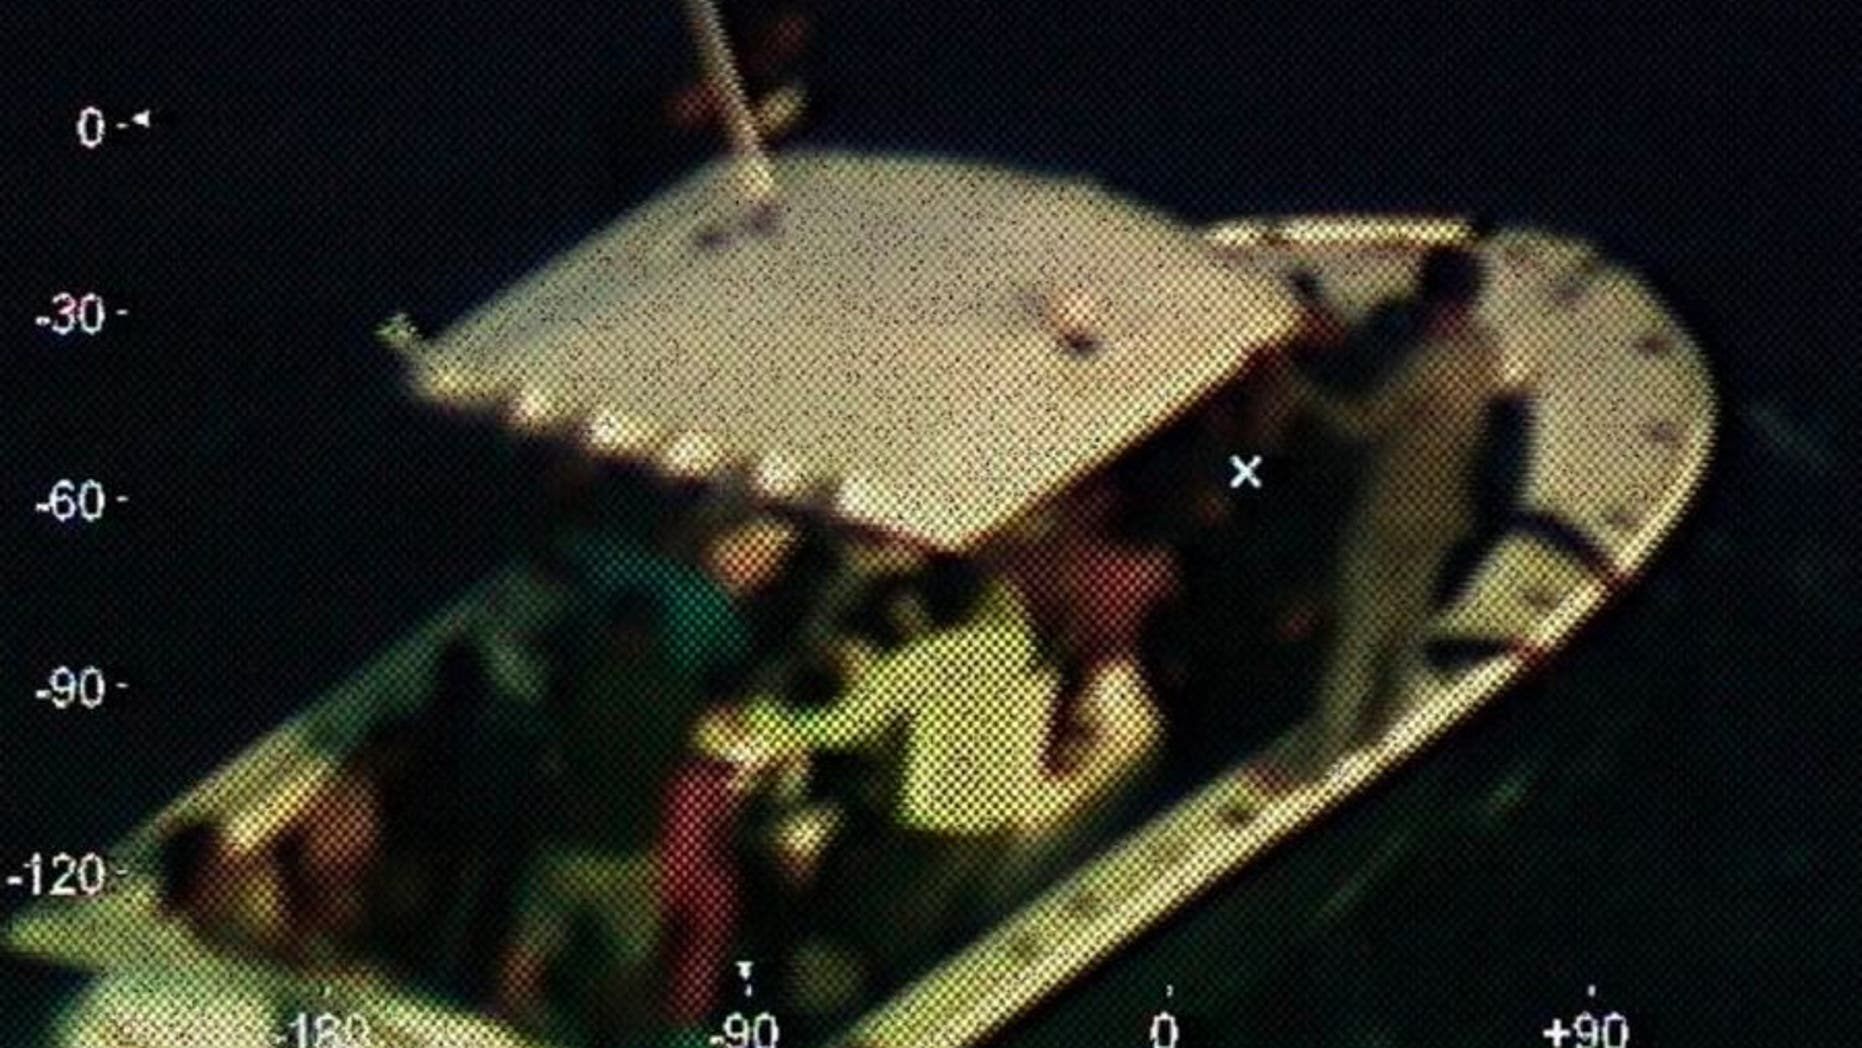 A photograph shows the disabled vessel 130 nautical miles from the Yucatan Peninsula of Mexico.